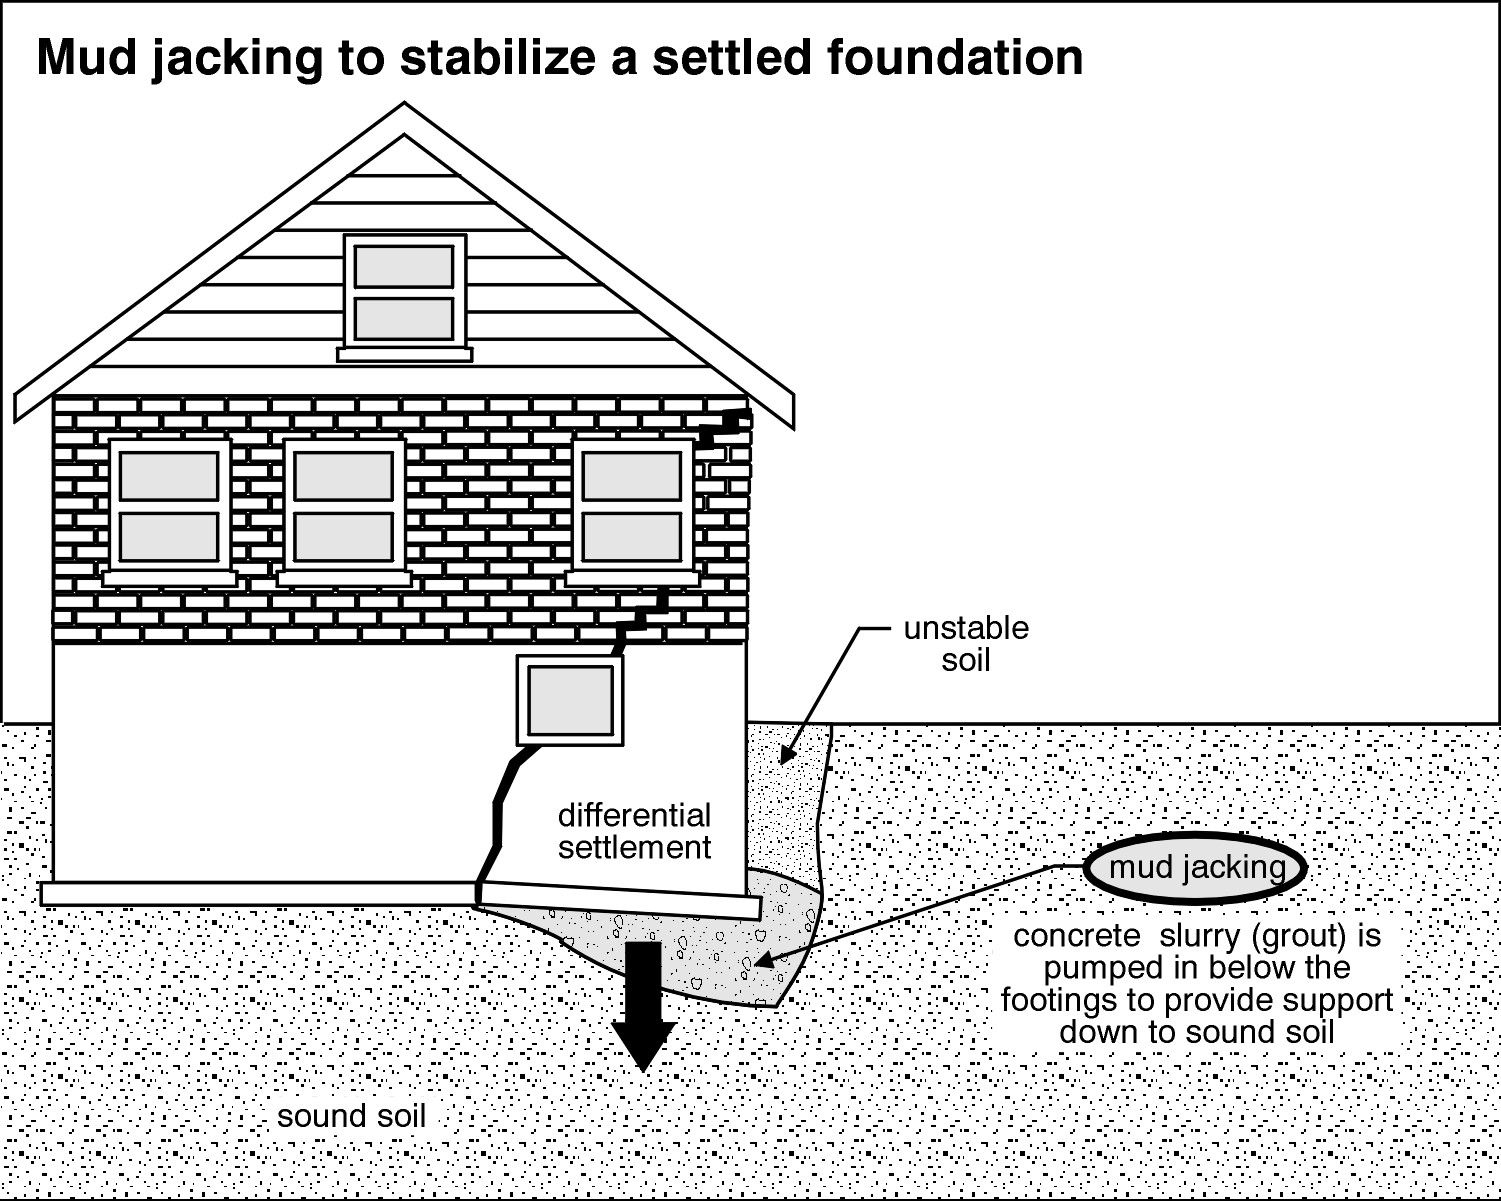 Homecrafters Home Inspection Services Inc Foundation Cracks